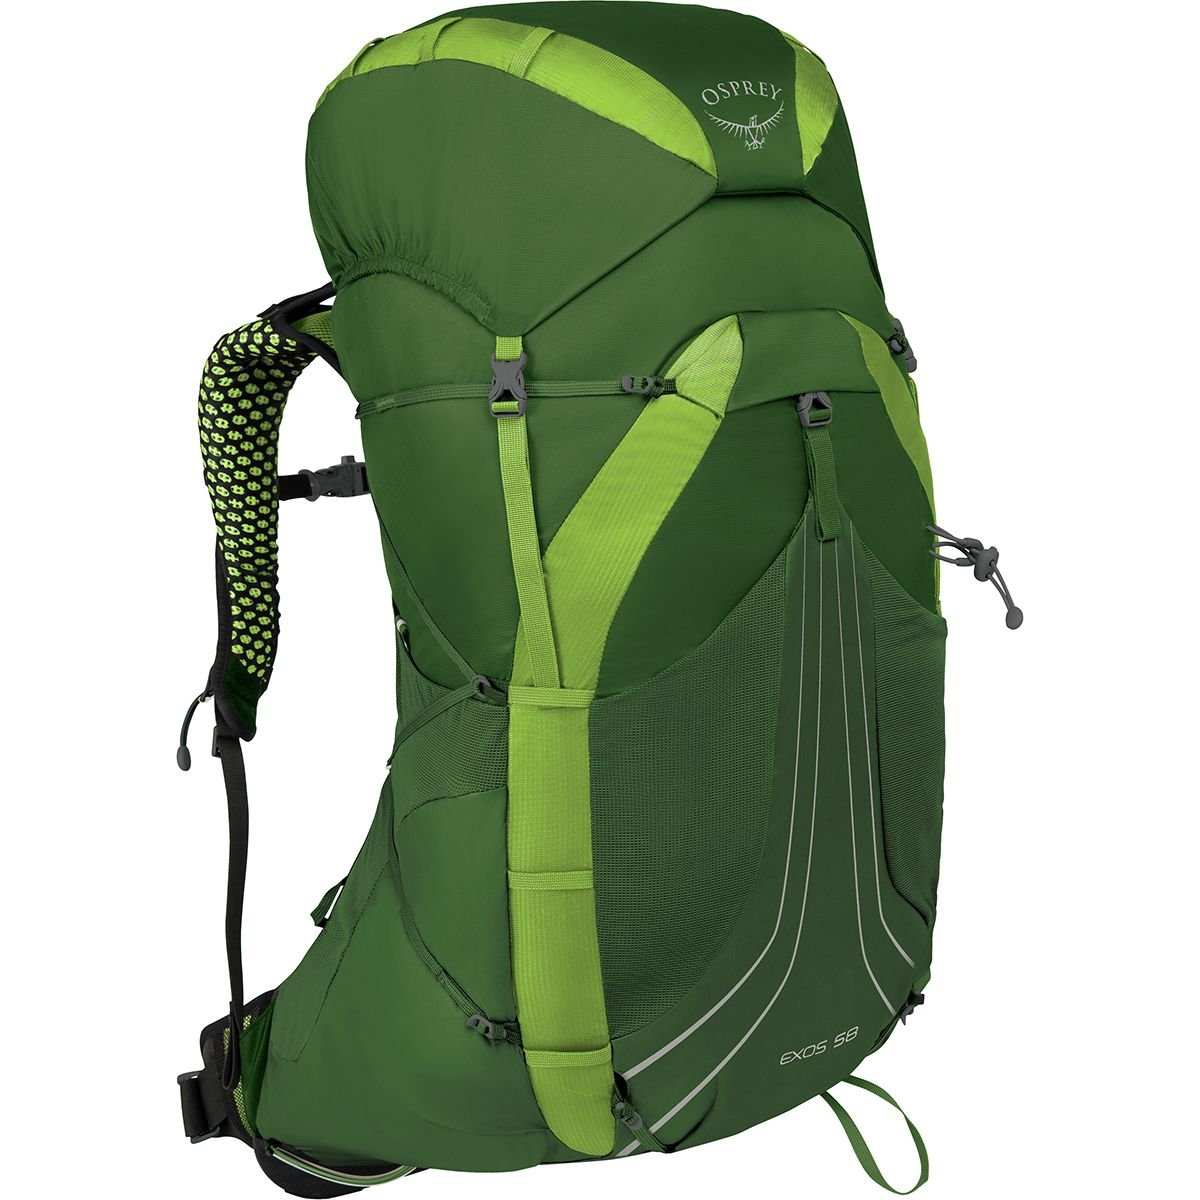 Osprey Packs Exos 58 Backpacking Pack